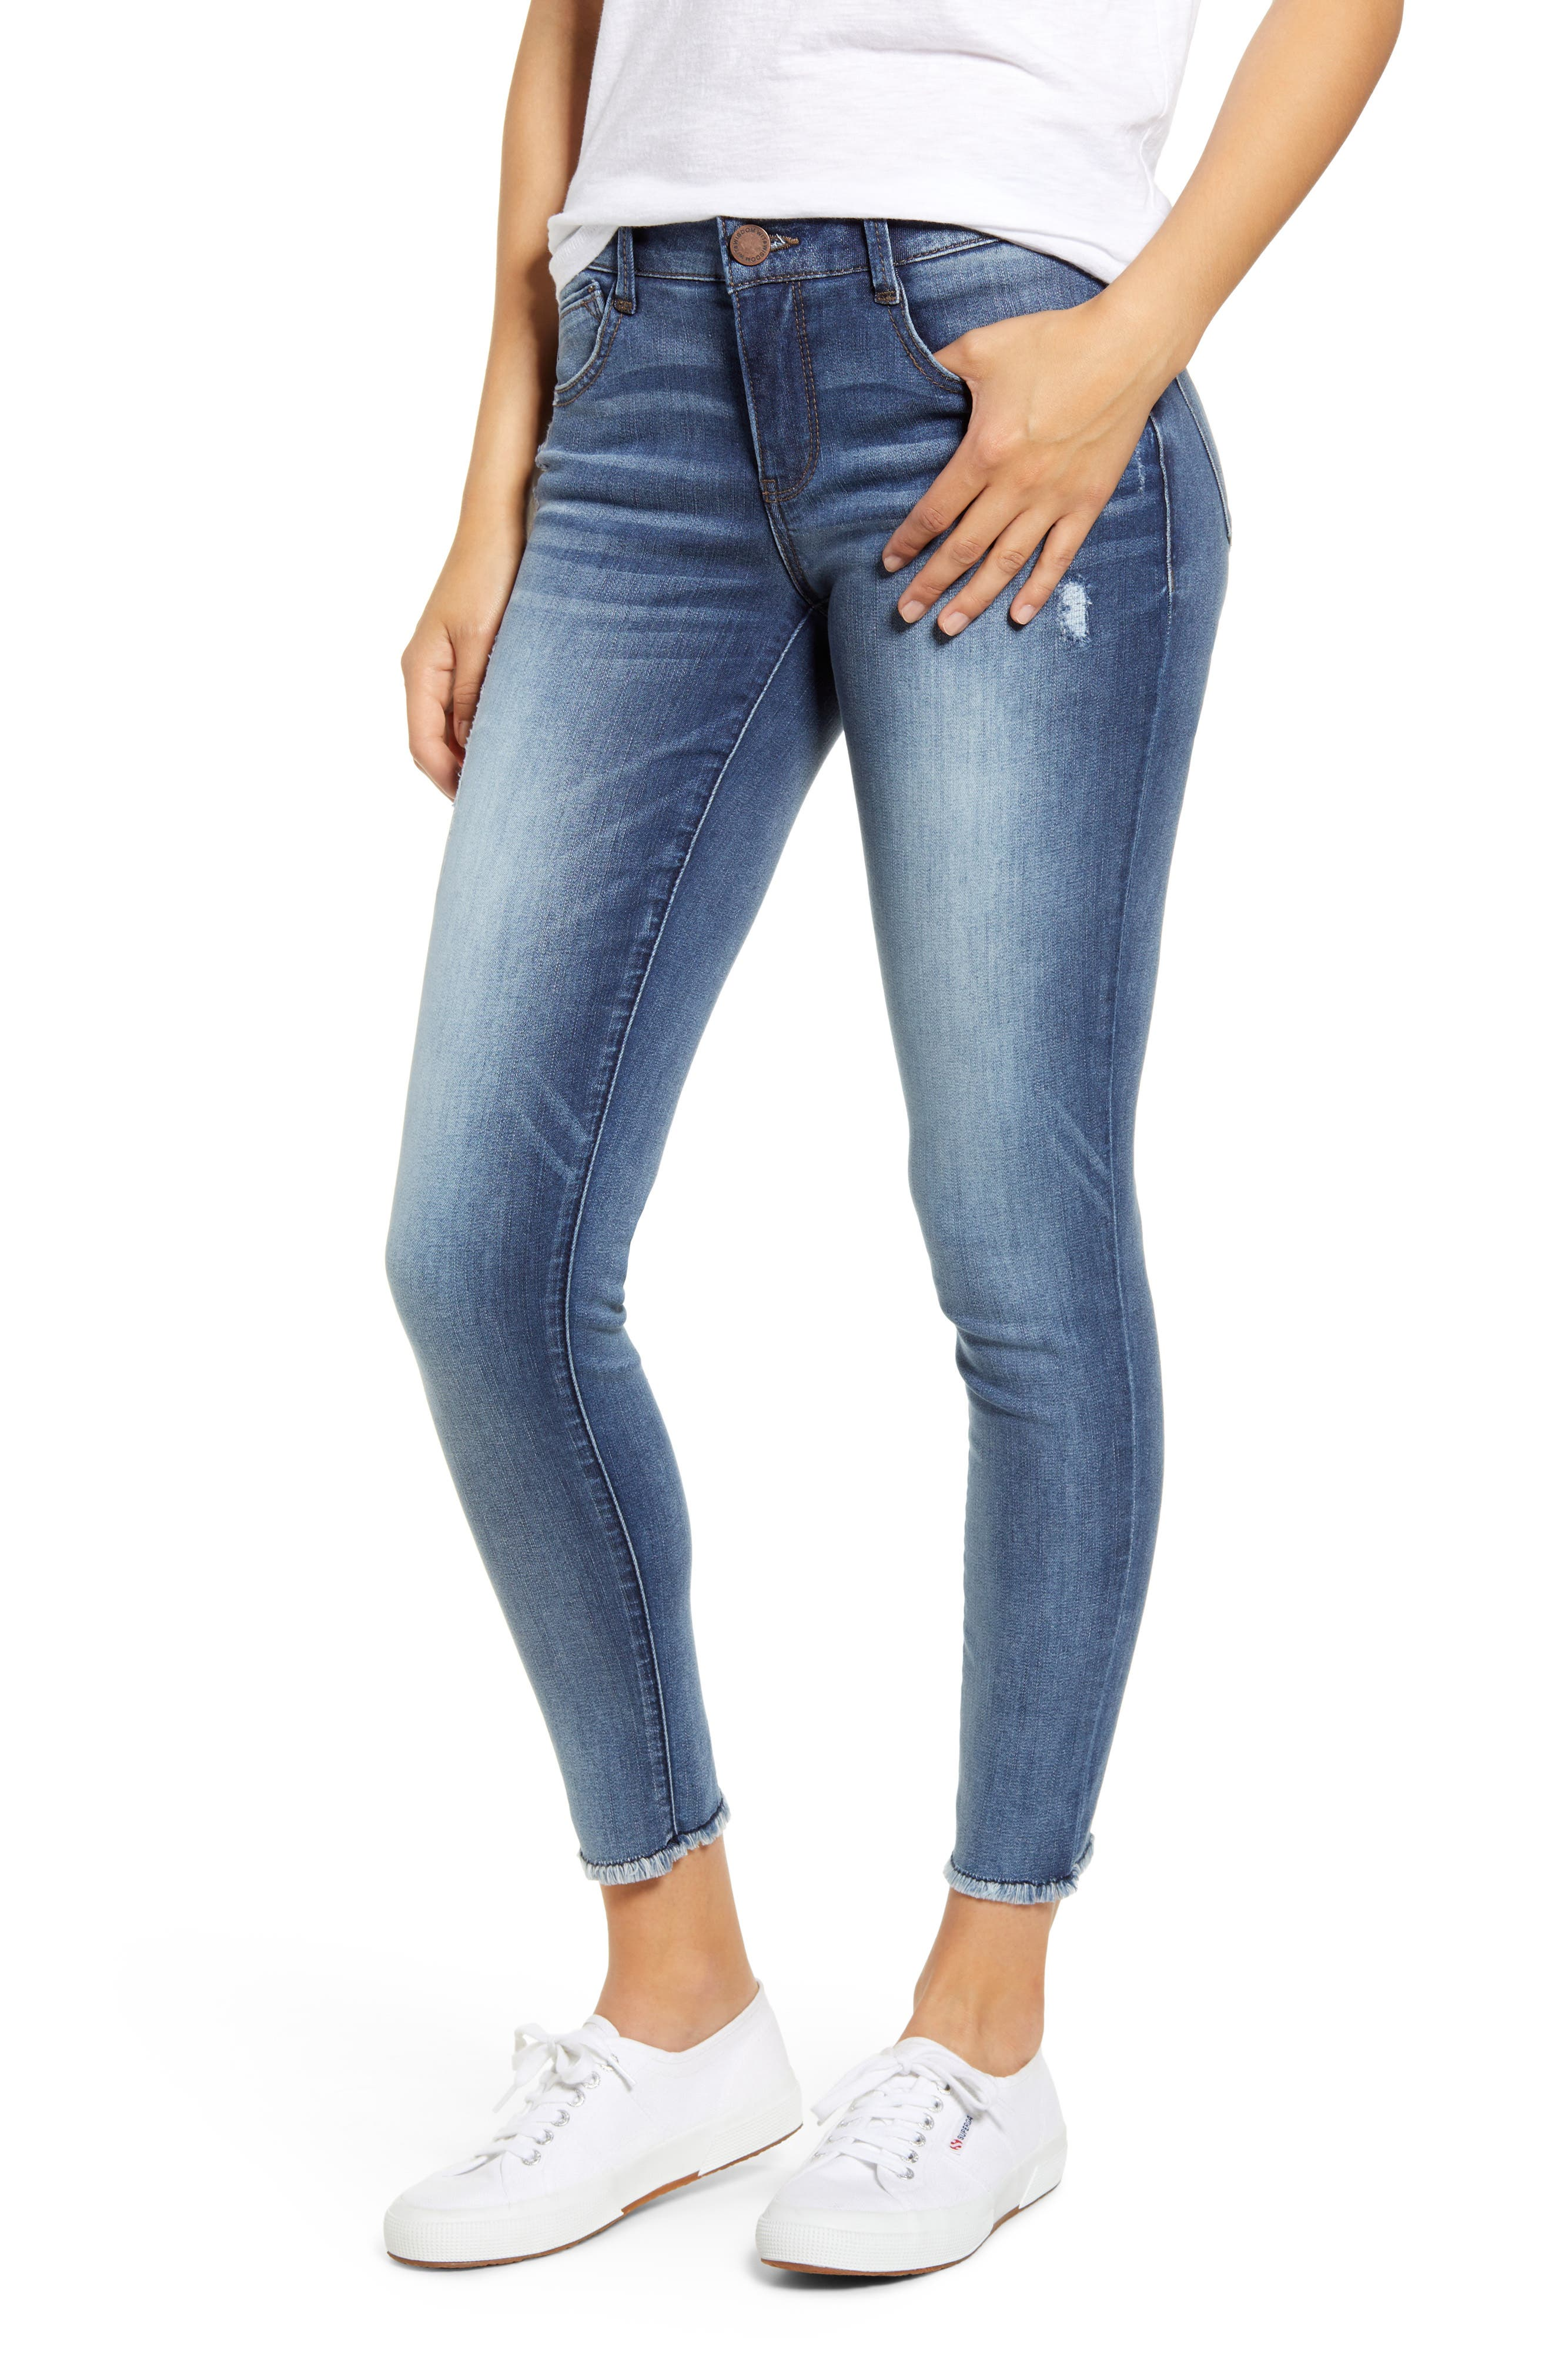 With a crazy-soft wash on these authentically faded, destruction-dashed jeans, you may have found the perfect pair. Style Name: Wit & Wisdom Luxe Touch Fray Hem Ankle Skinny Jeans (Nordstrom Exclusive). Style Number: 5833724. Available in stores.